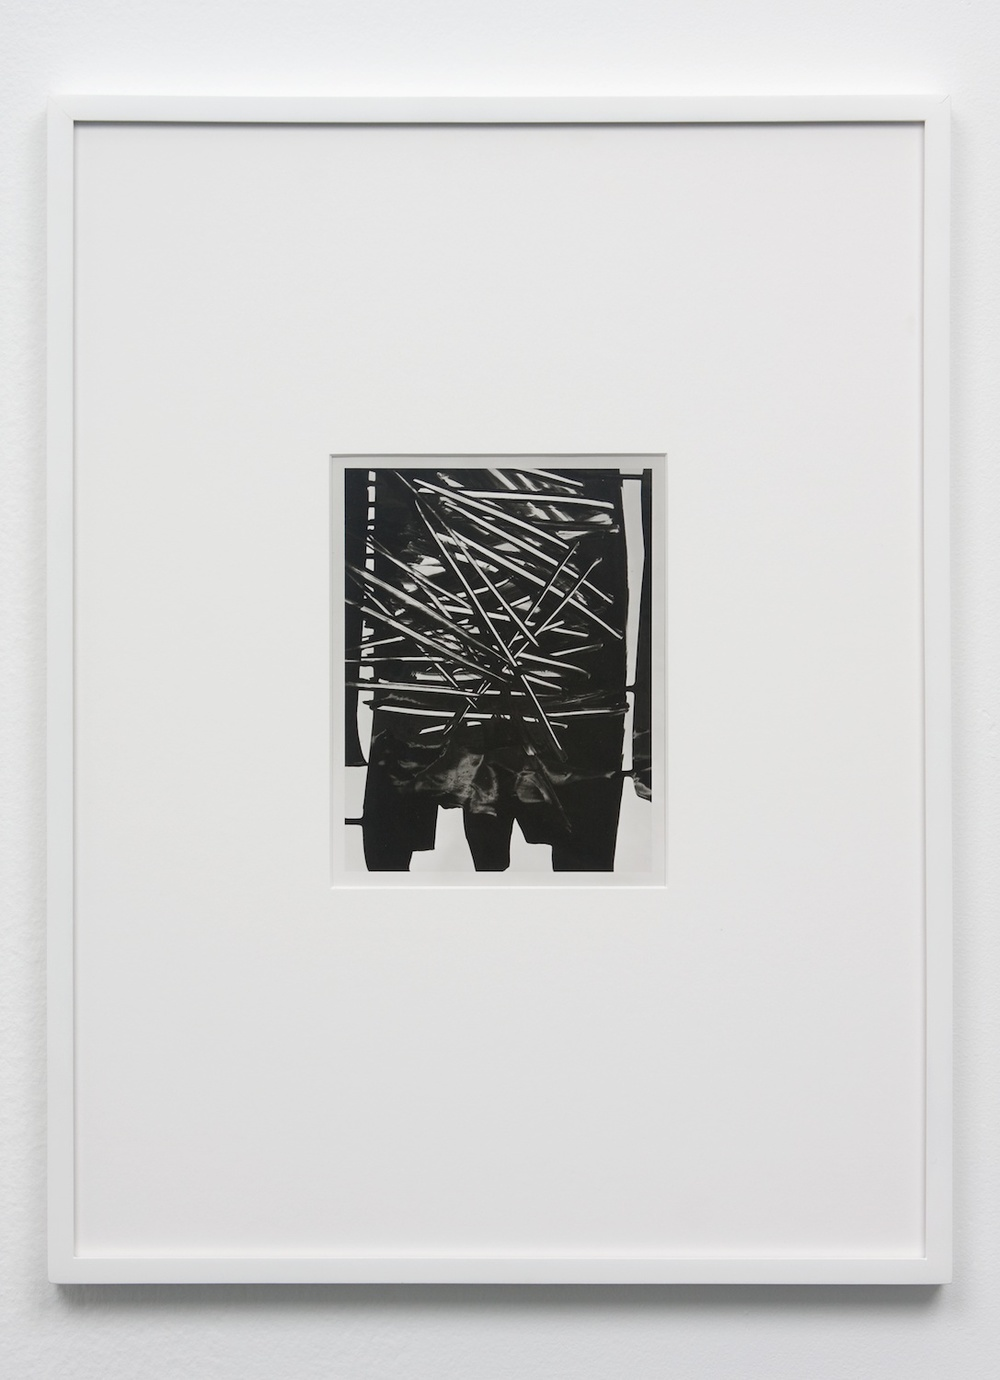 Anthony Pearson  Untitled (Solarization)  2010 Framed solarized silver gelatin photograph 17 ½h x 13 ¼w in AP237